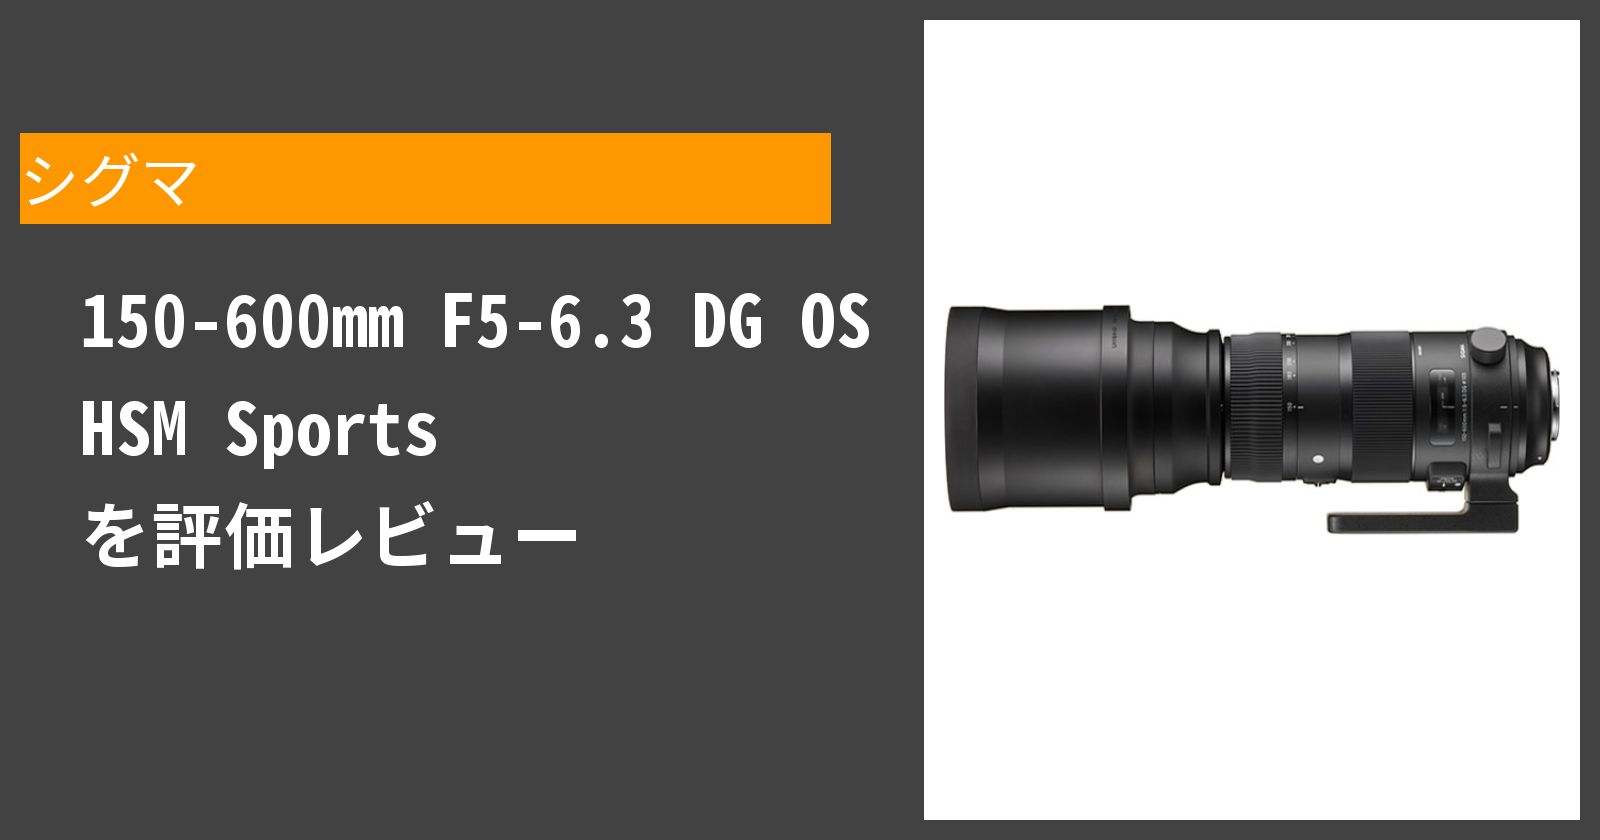 150-600mm F5-6.3 DG OS HSM Sportsを徹底評価